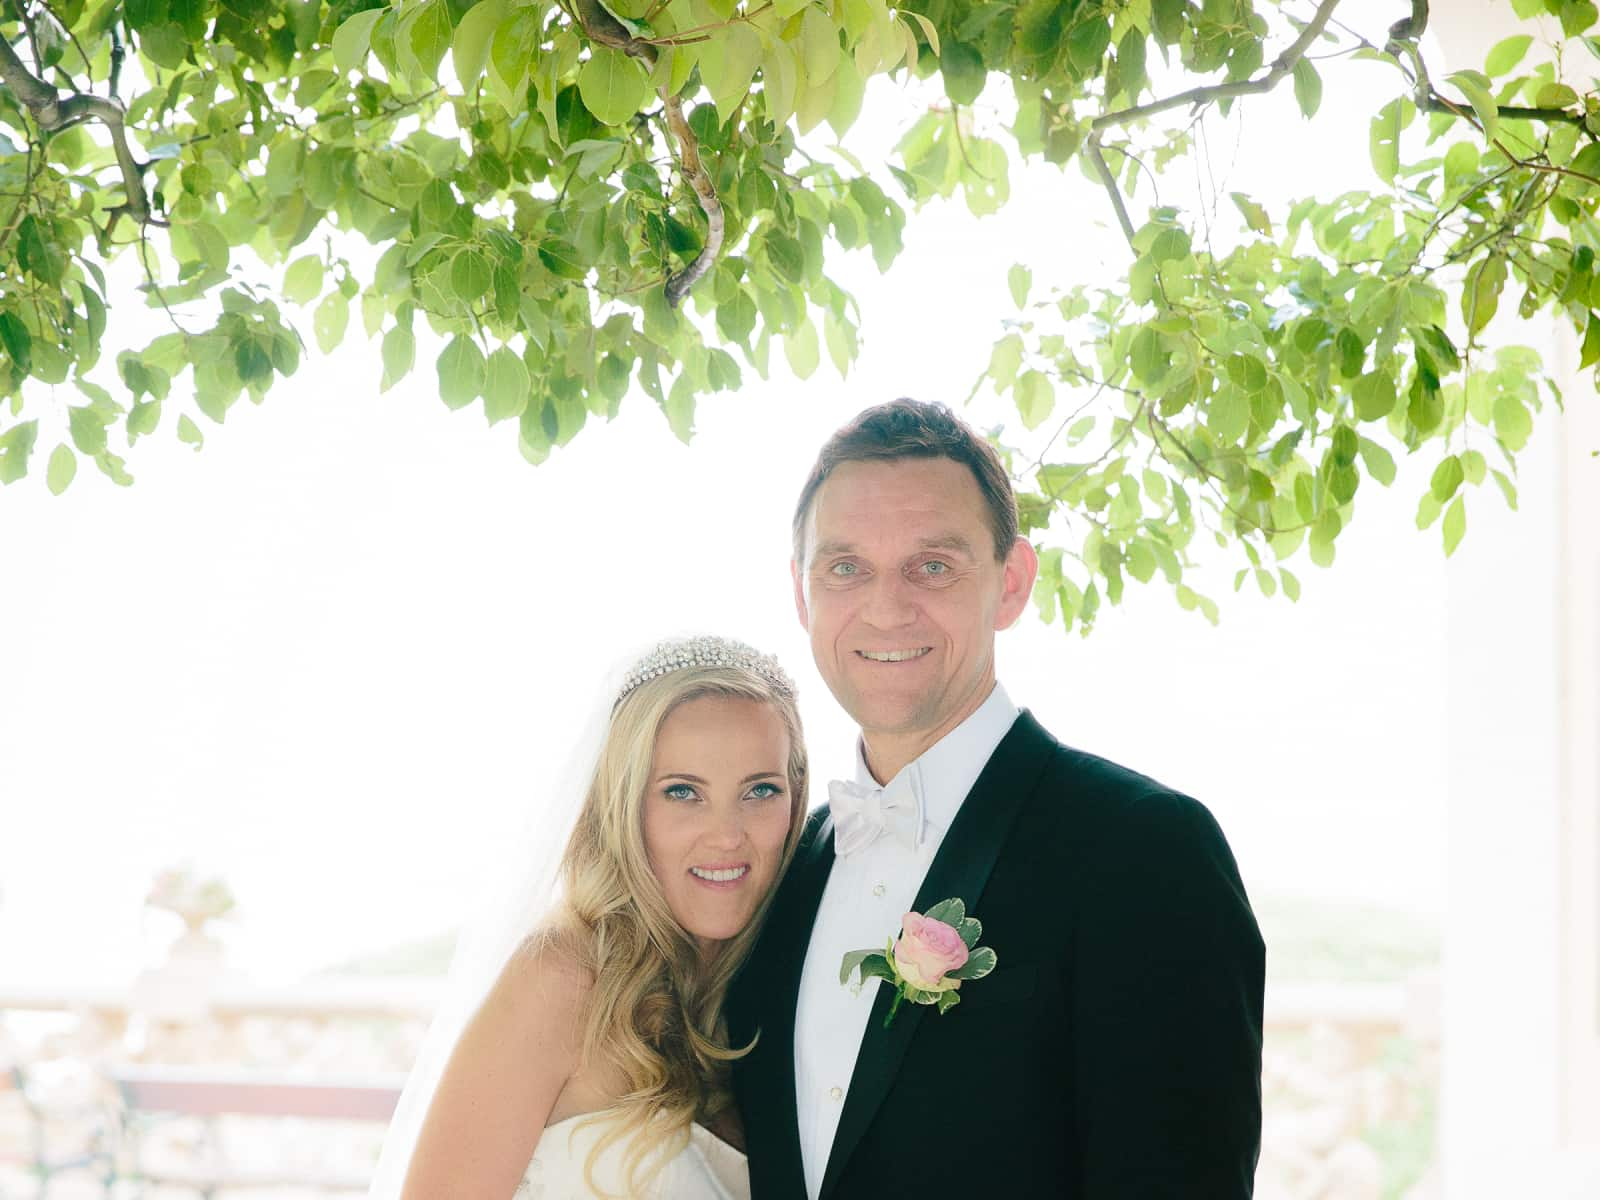 Andrew & Kate from London, United Kingdom